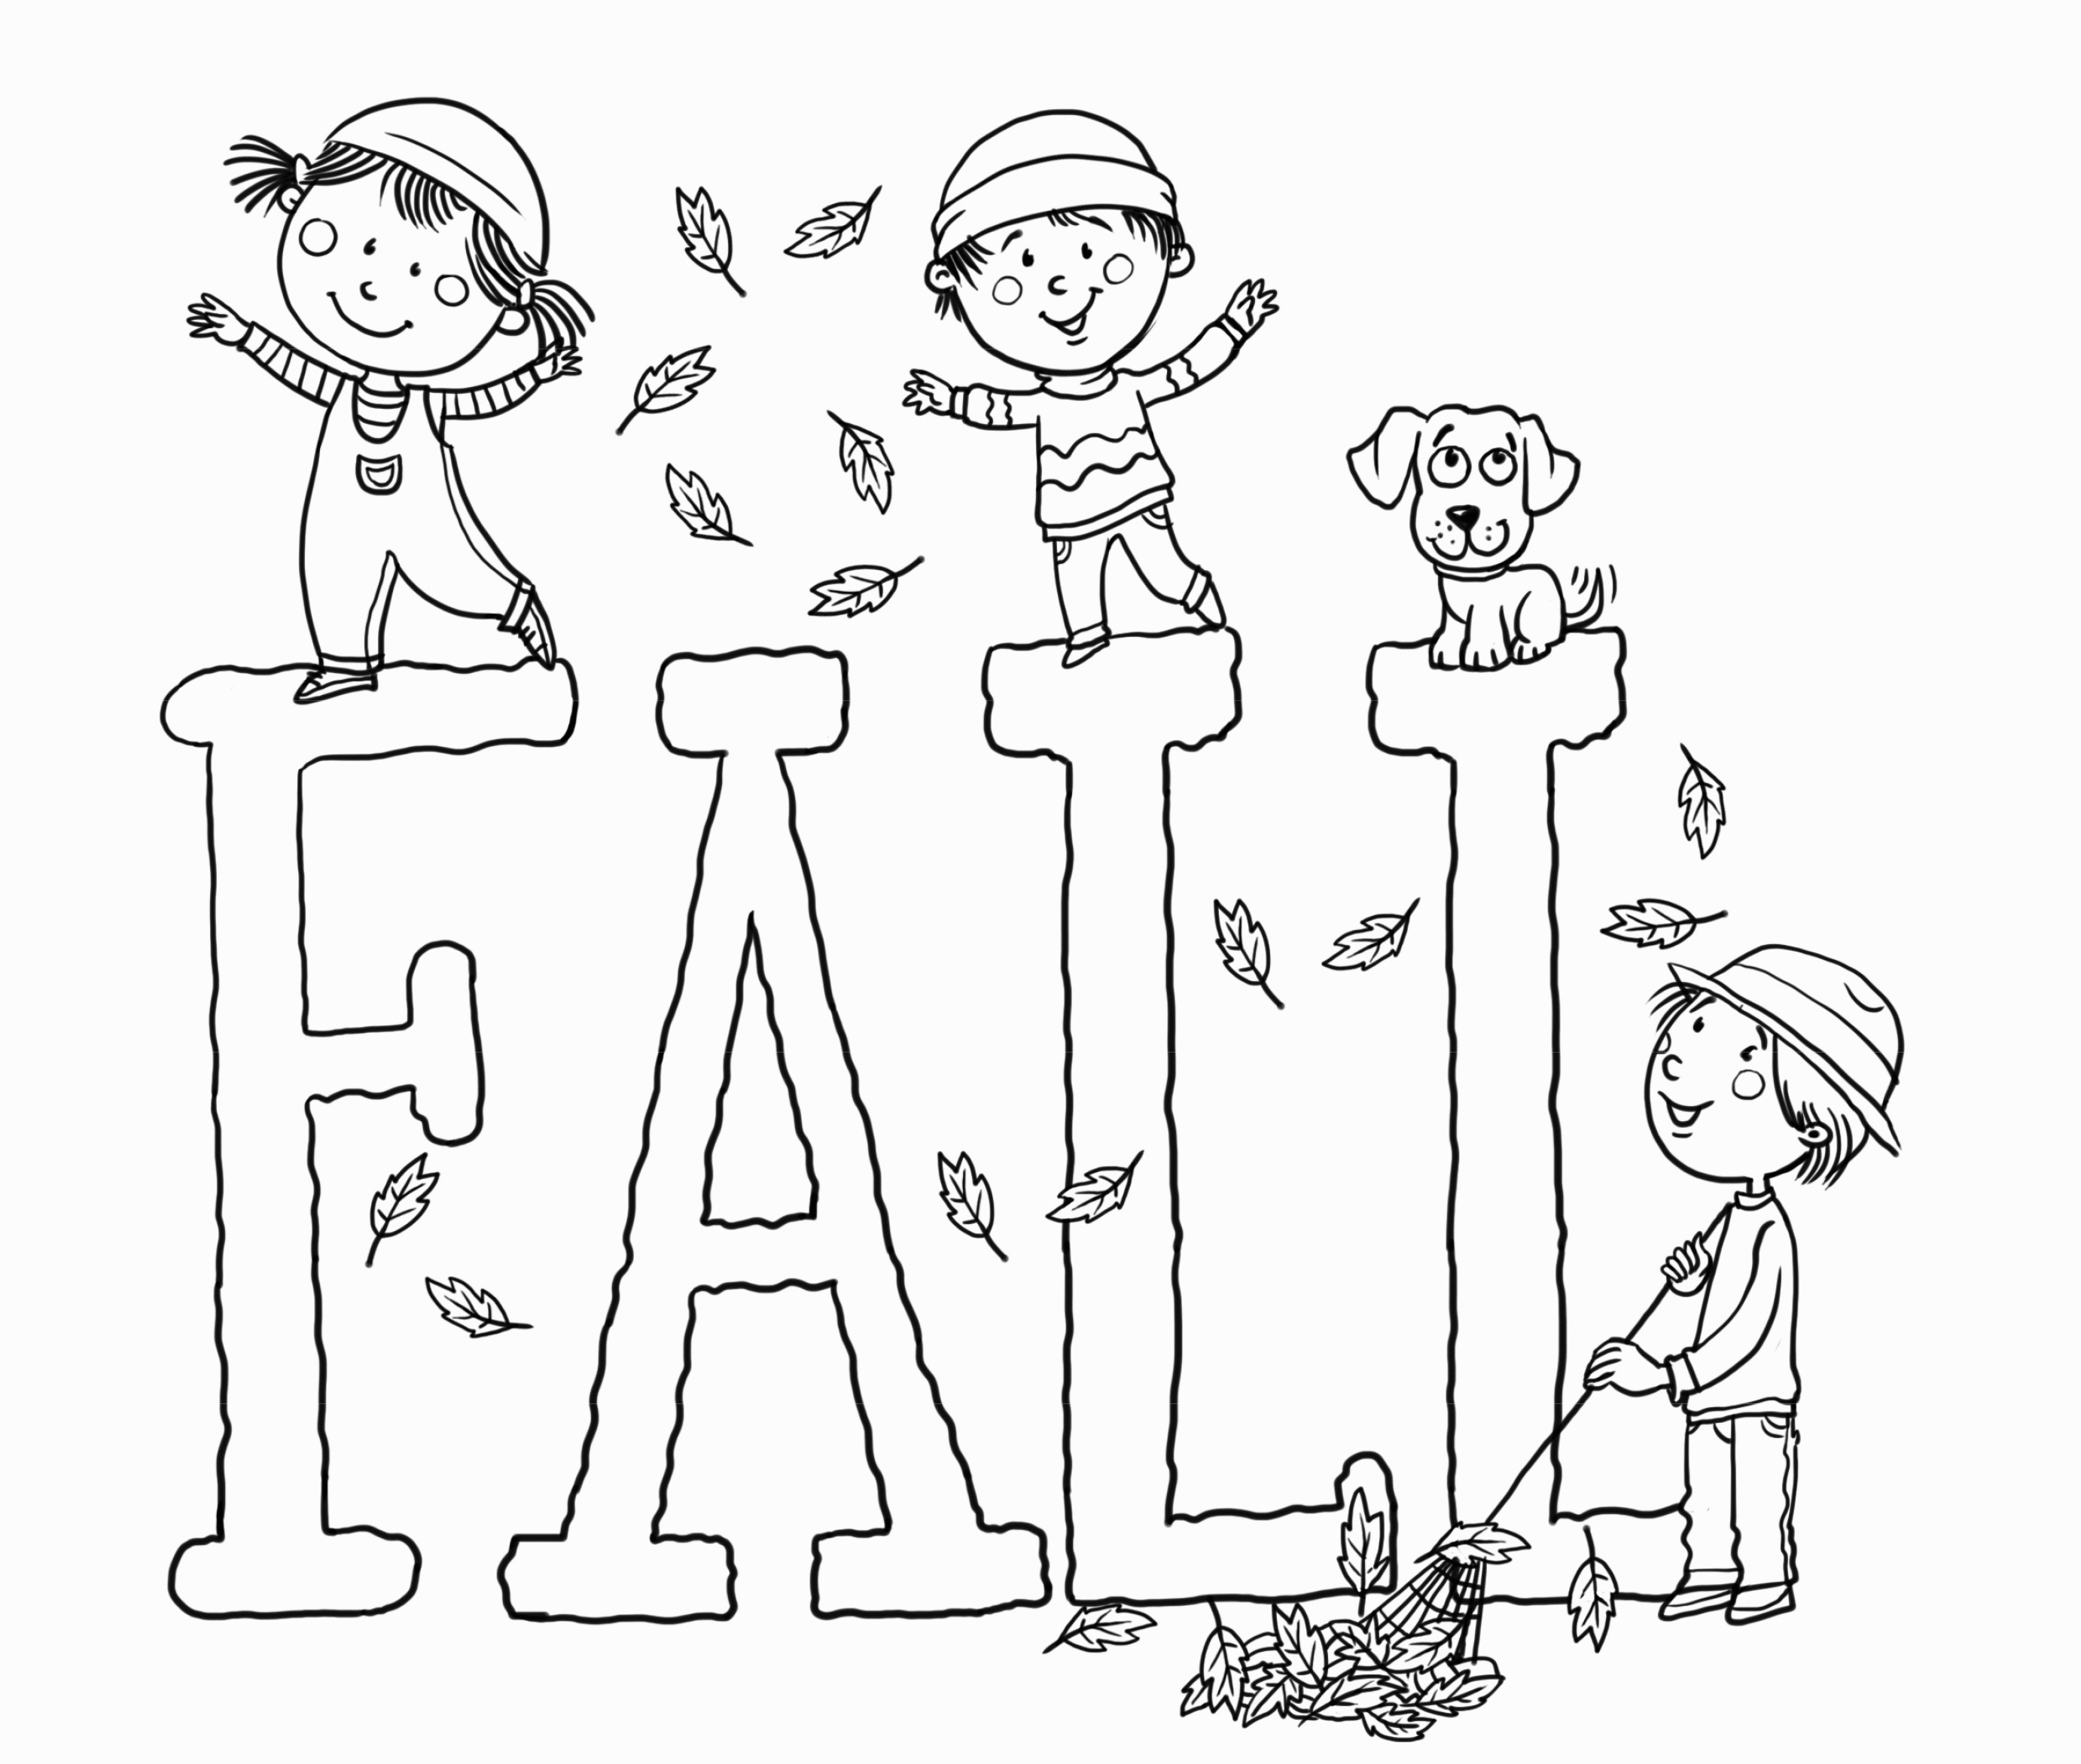 Harvest Coloring Pages Apple Free Printable Fall At Bitslice Me 2764 - Free Printable Fall Harvest Coloring Pages